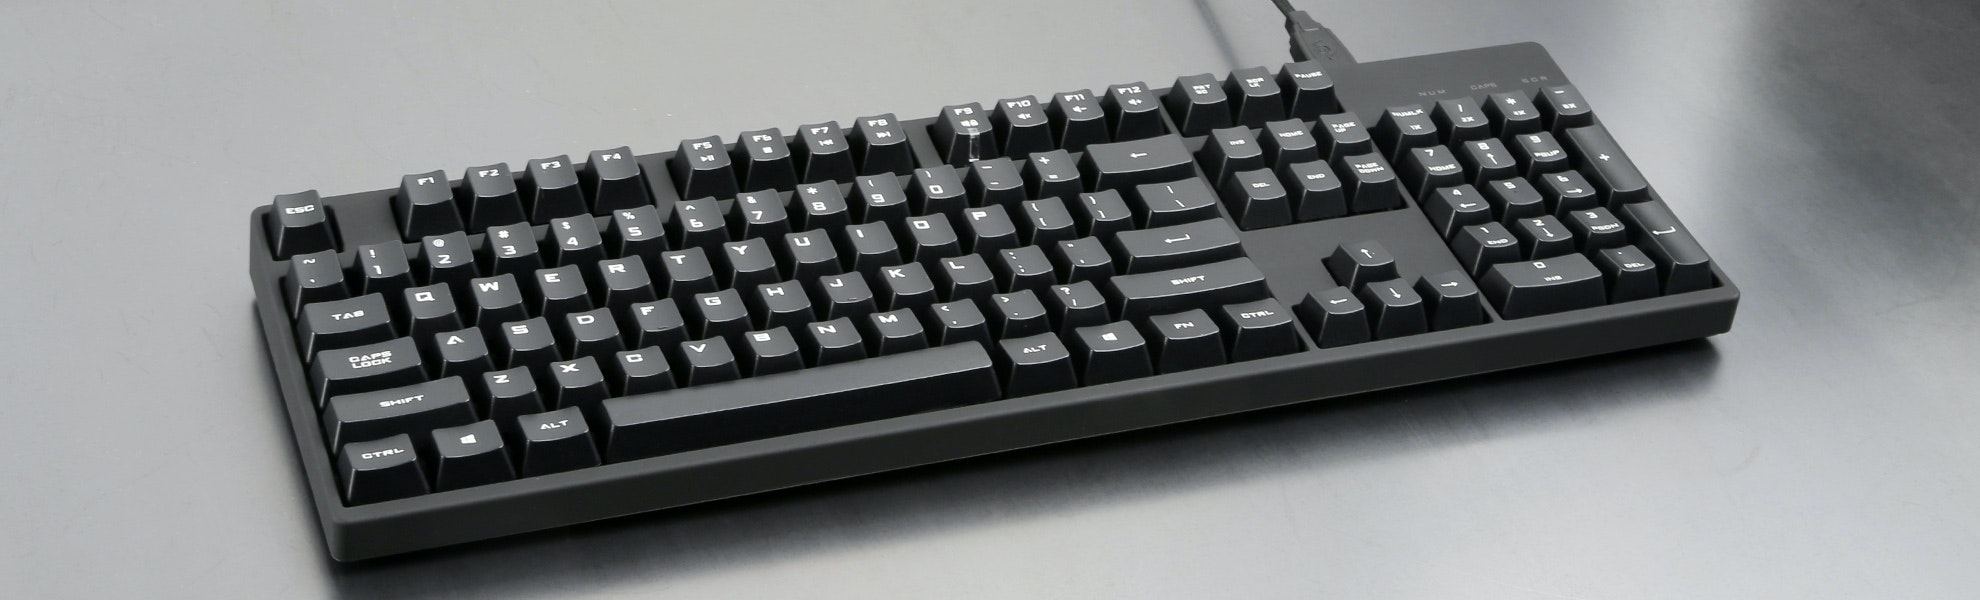 CM Storm QuickFire XT Keyboard (Cherry MX Green)